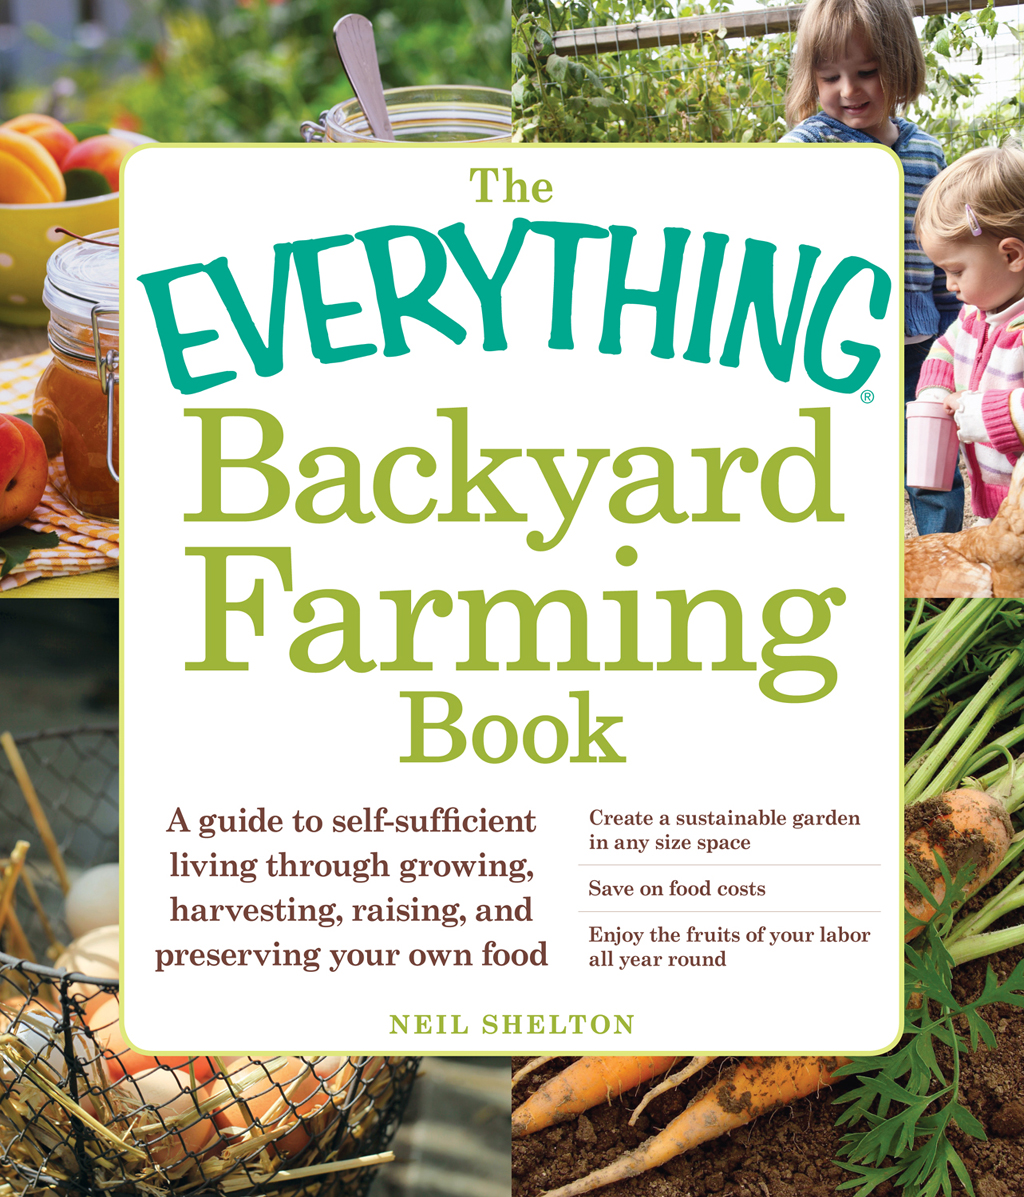 The Everything Backyard Farming Book A Guide to Self-Sufficient Living Through Growing,  Harvesting,  Raising,  and Preserving Your Own Food